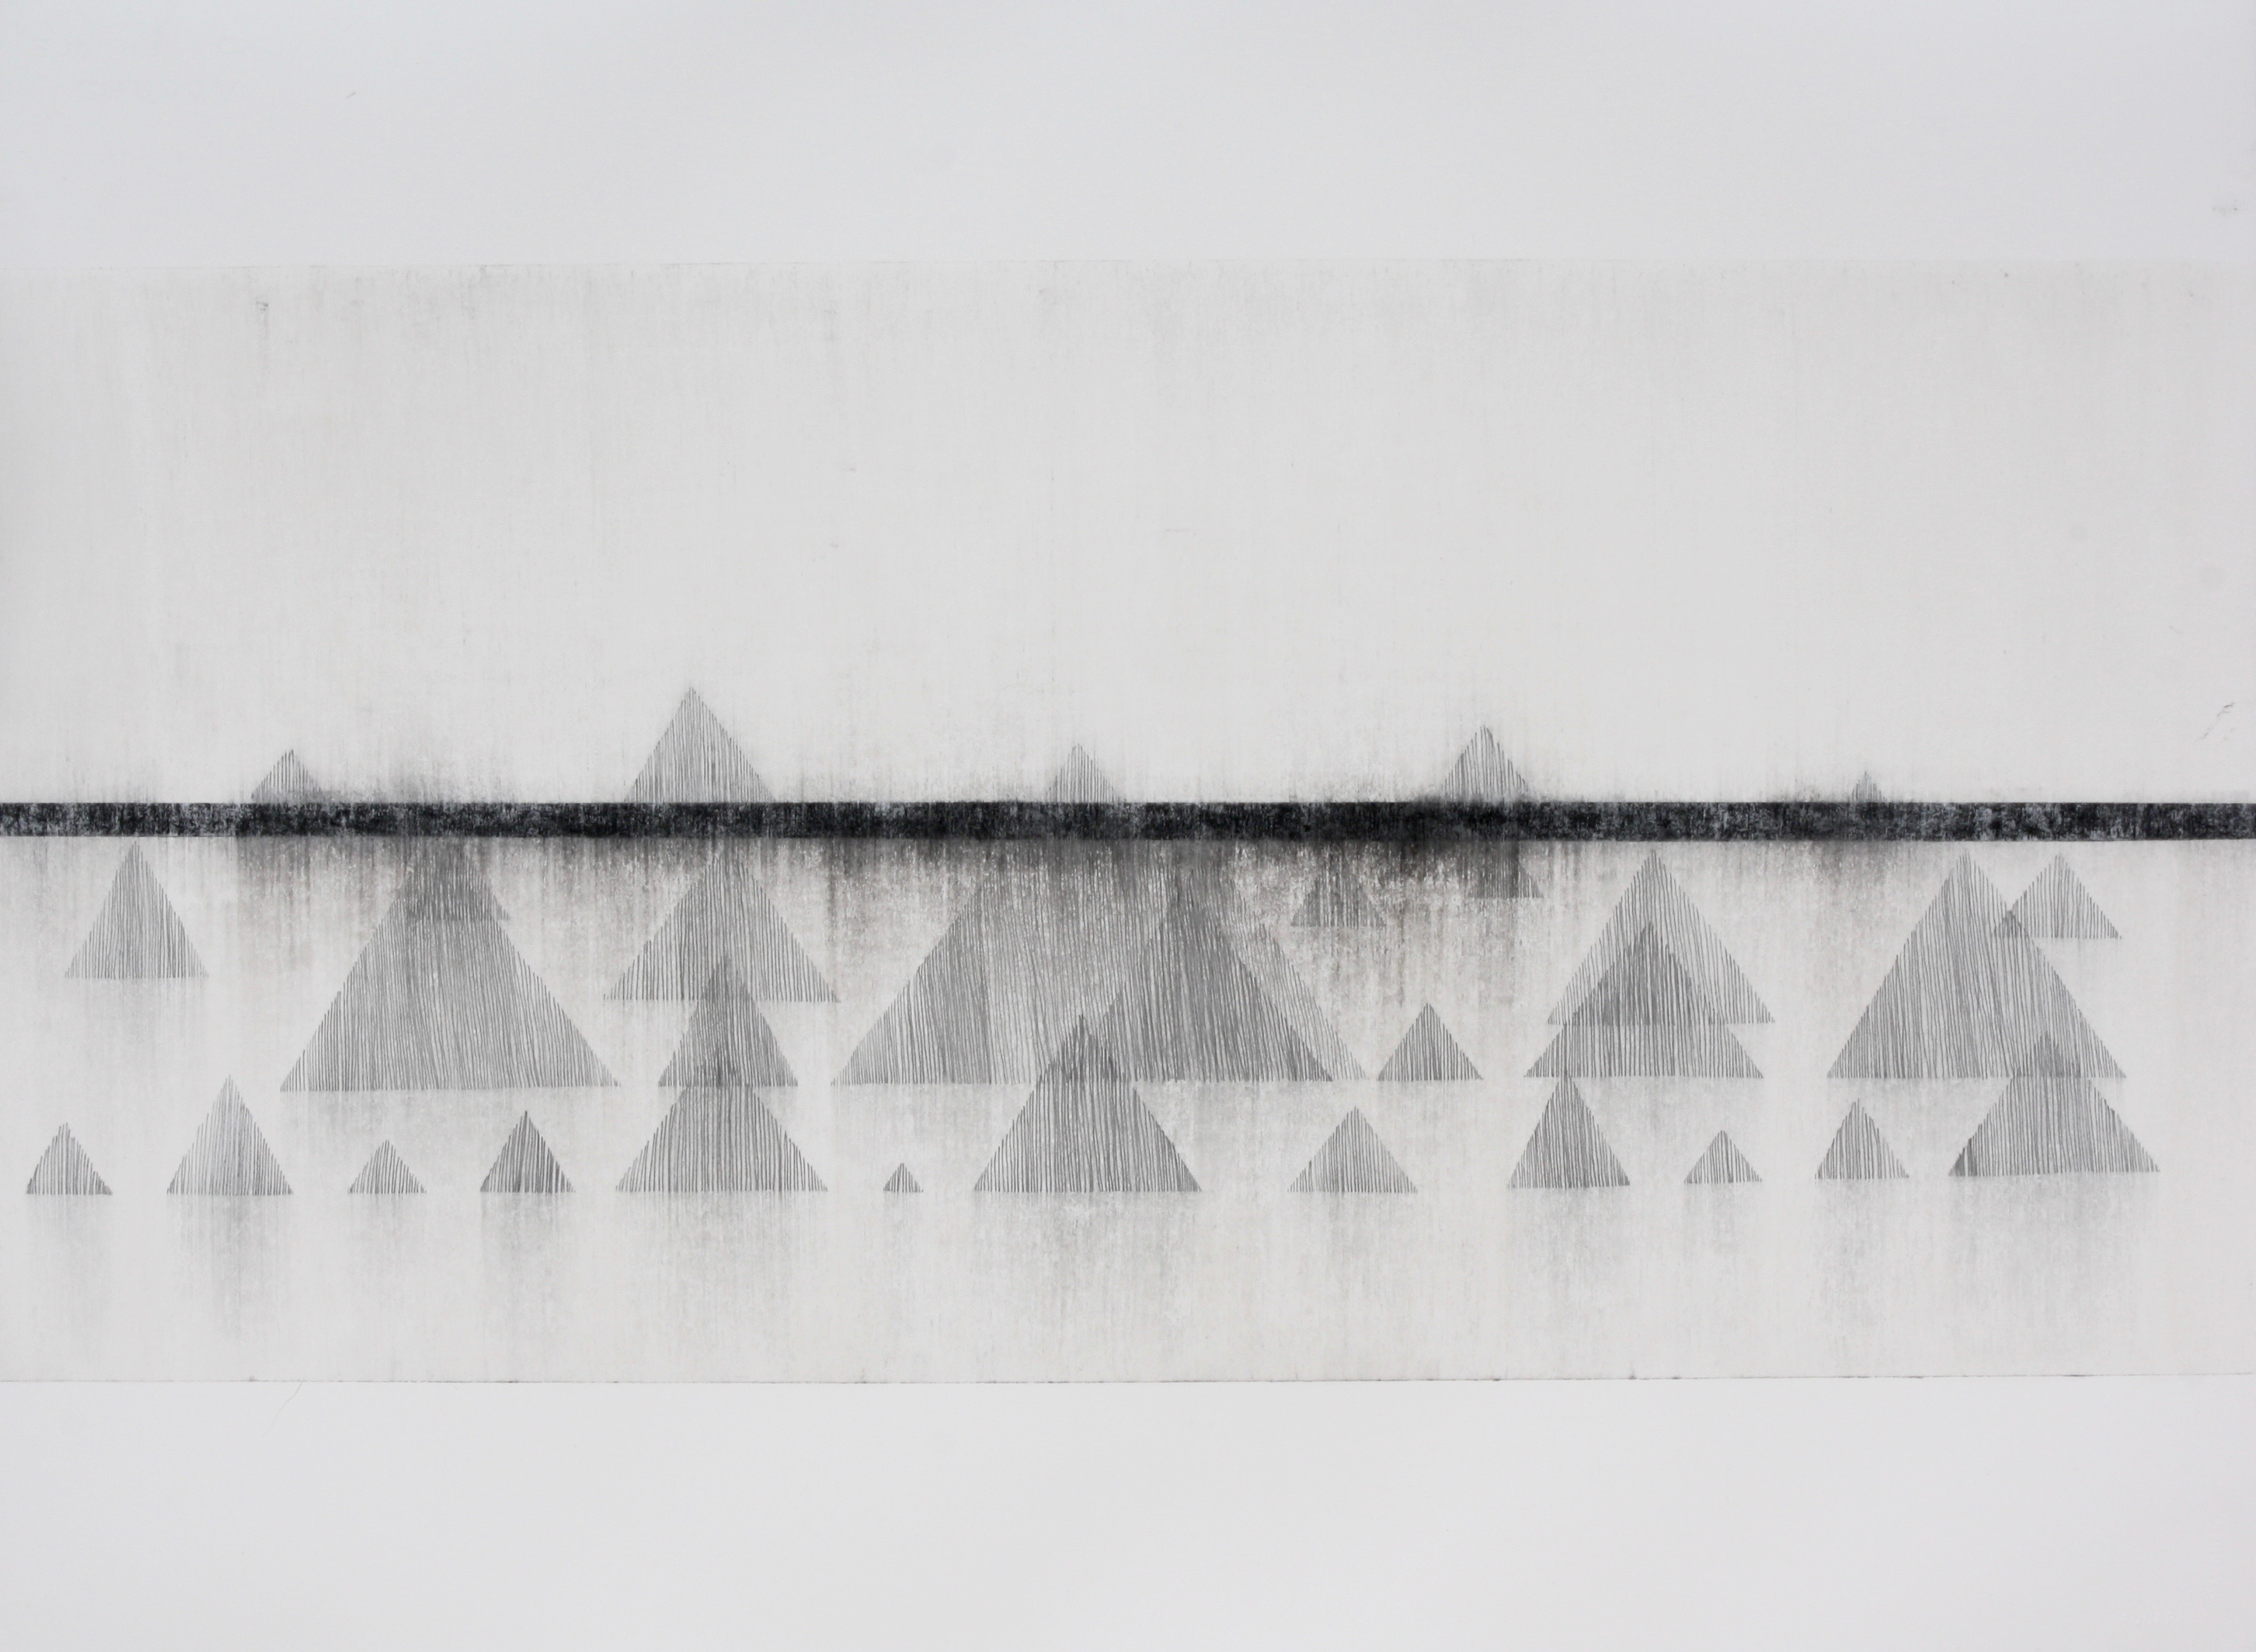 Robinson_Fiona Debussy La Cathdrale Engloutie/Sunken Cathedral #5. Graphite charcoal and mixed media 76 x 56cms